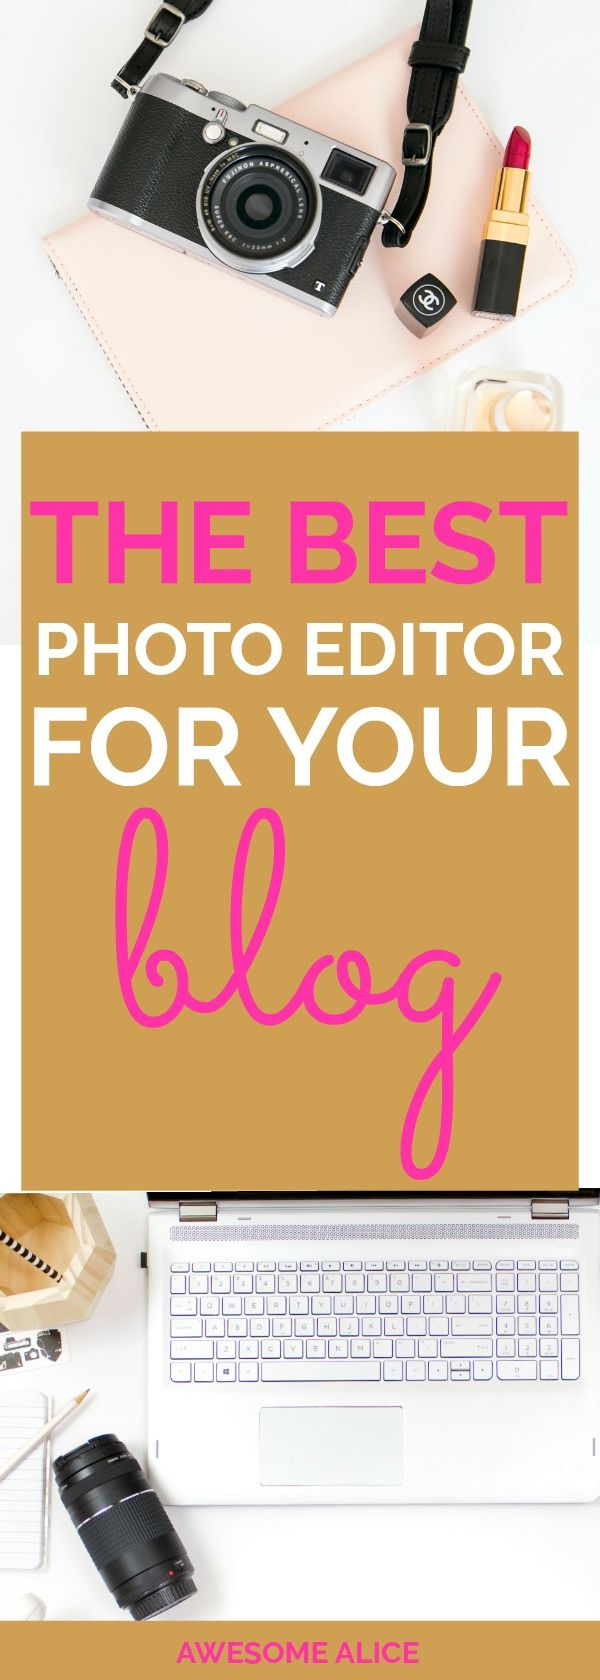 Do you want to learn how to take beautiful photos and how to edit them for your blog? Picmonkey is the best photo editor online and they have tons of tutorials for you if you are a beginner. Click to sign up today! #Affiliate #blogger #bloggingtips #phototips #howtoeditphotos